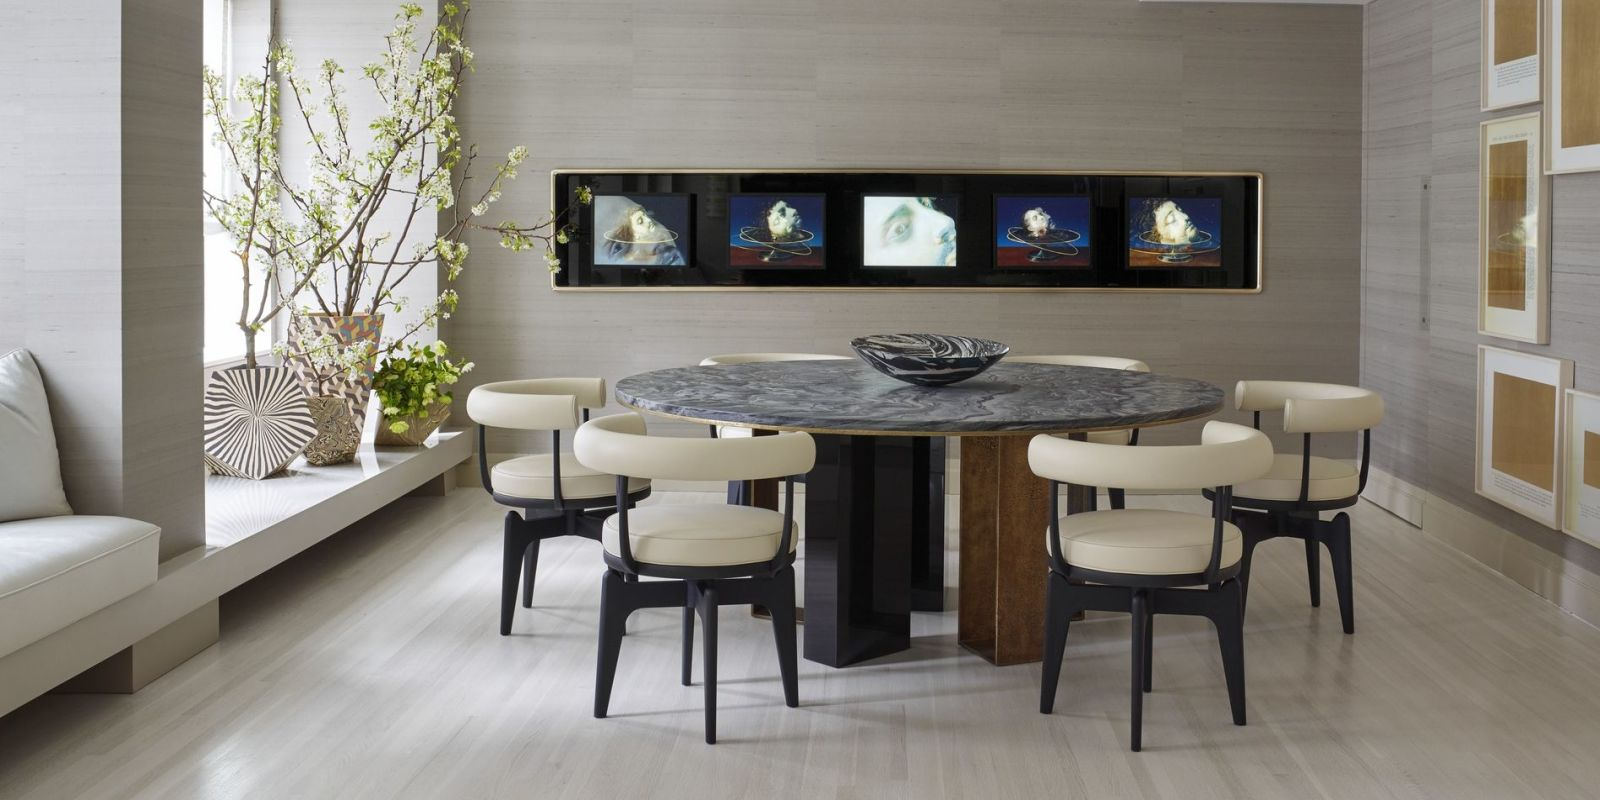 25 modern dining room decorating ideas contemporary for Dining room spaces